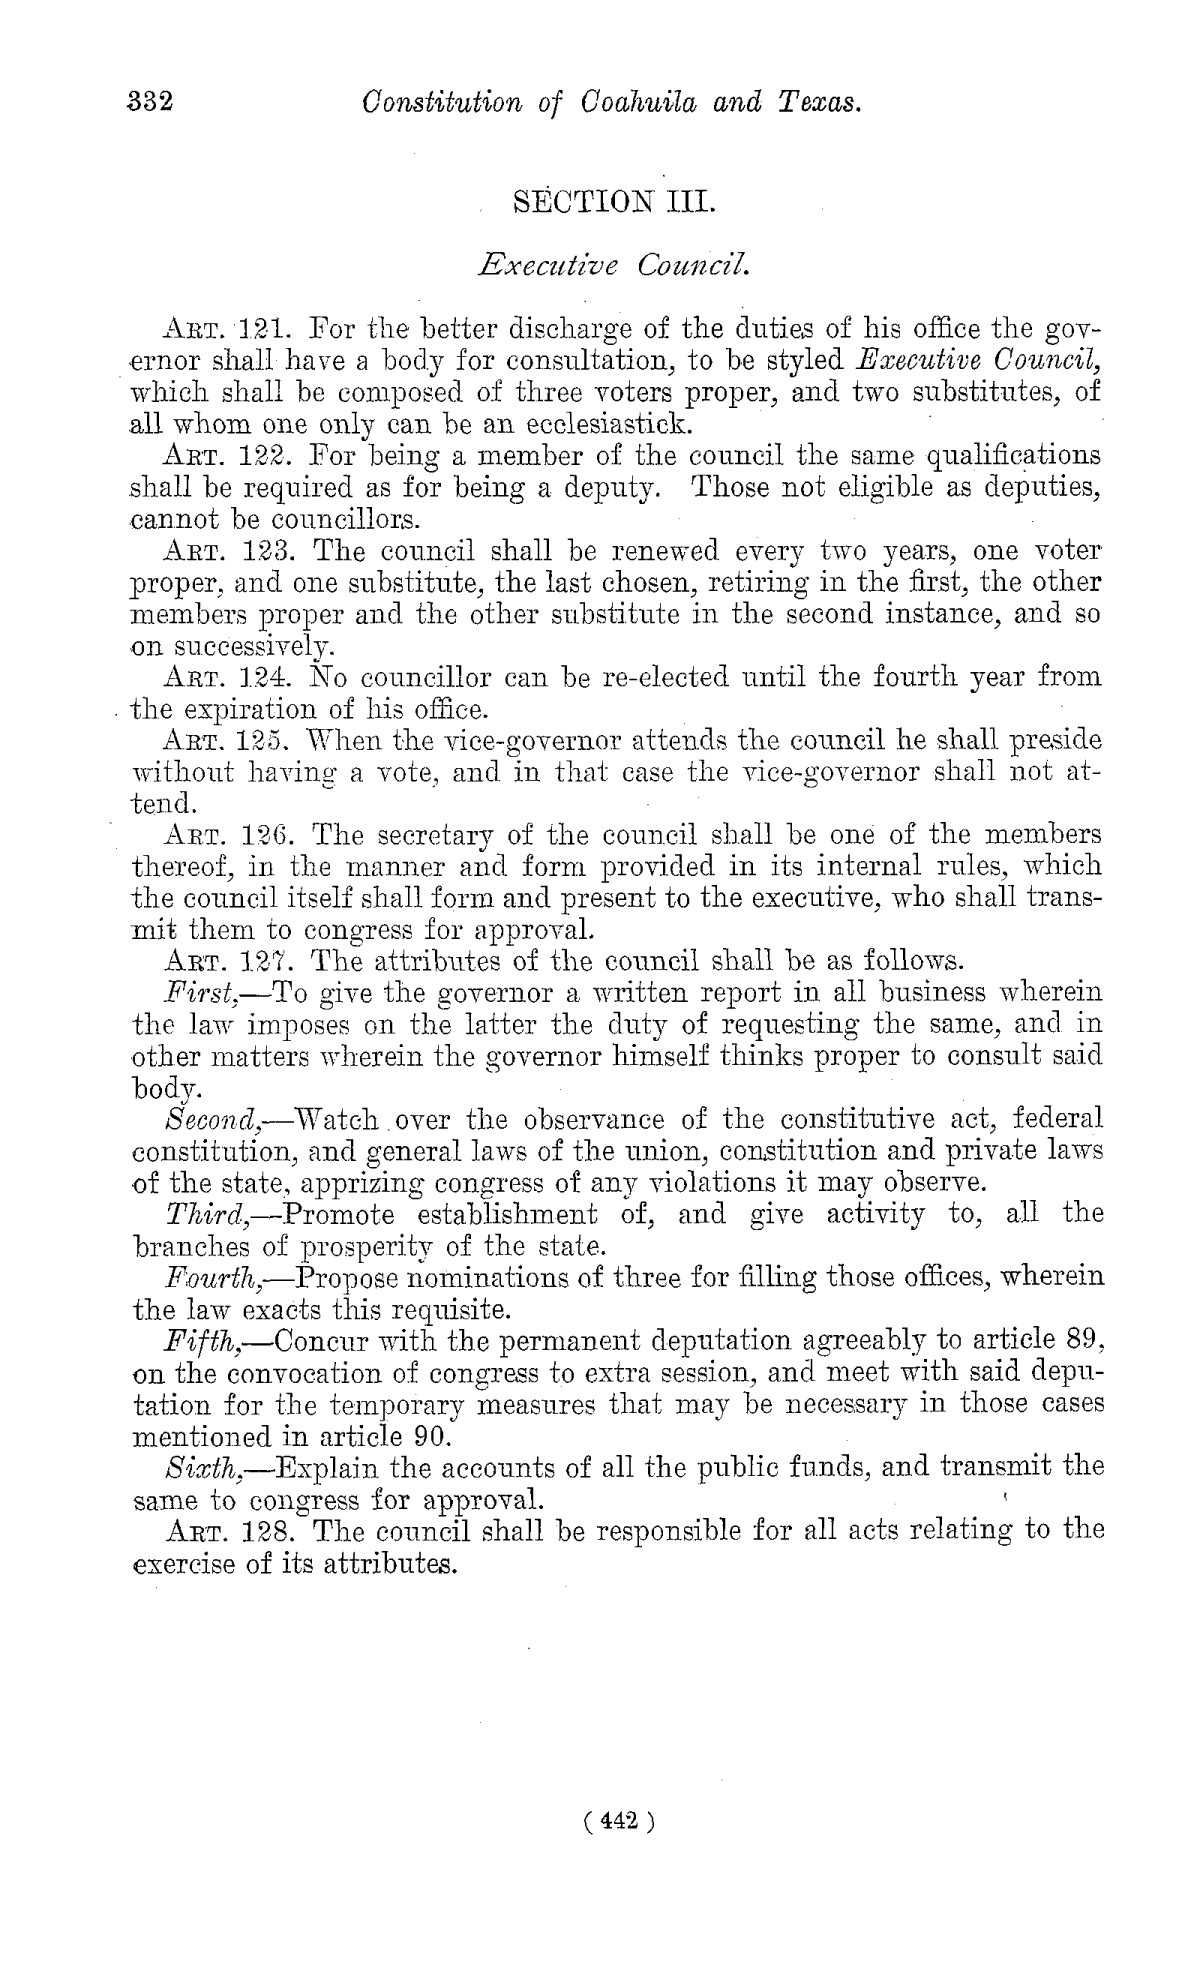 The Laws of Texas, 1822-1897 Volume 1                                                                                                      442